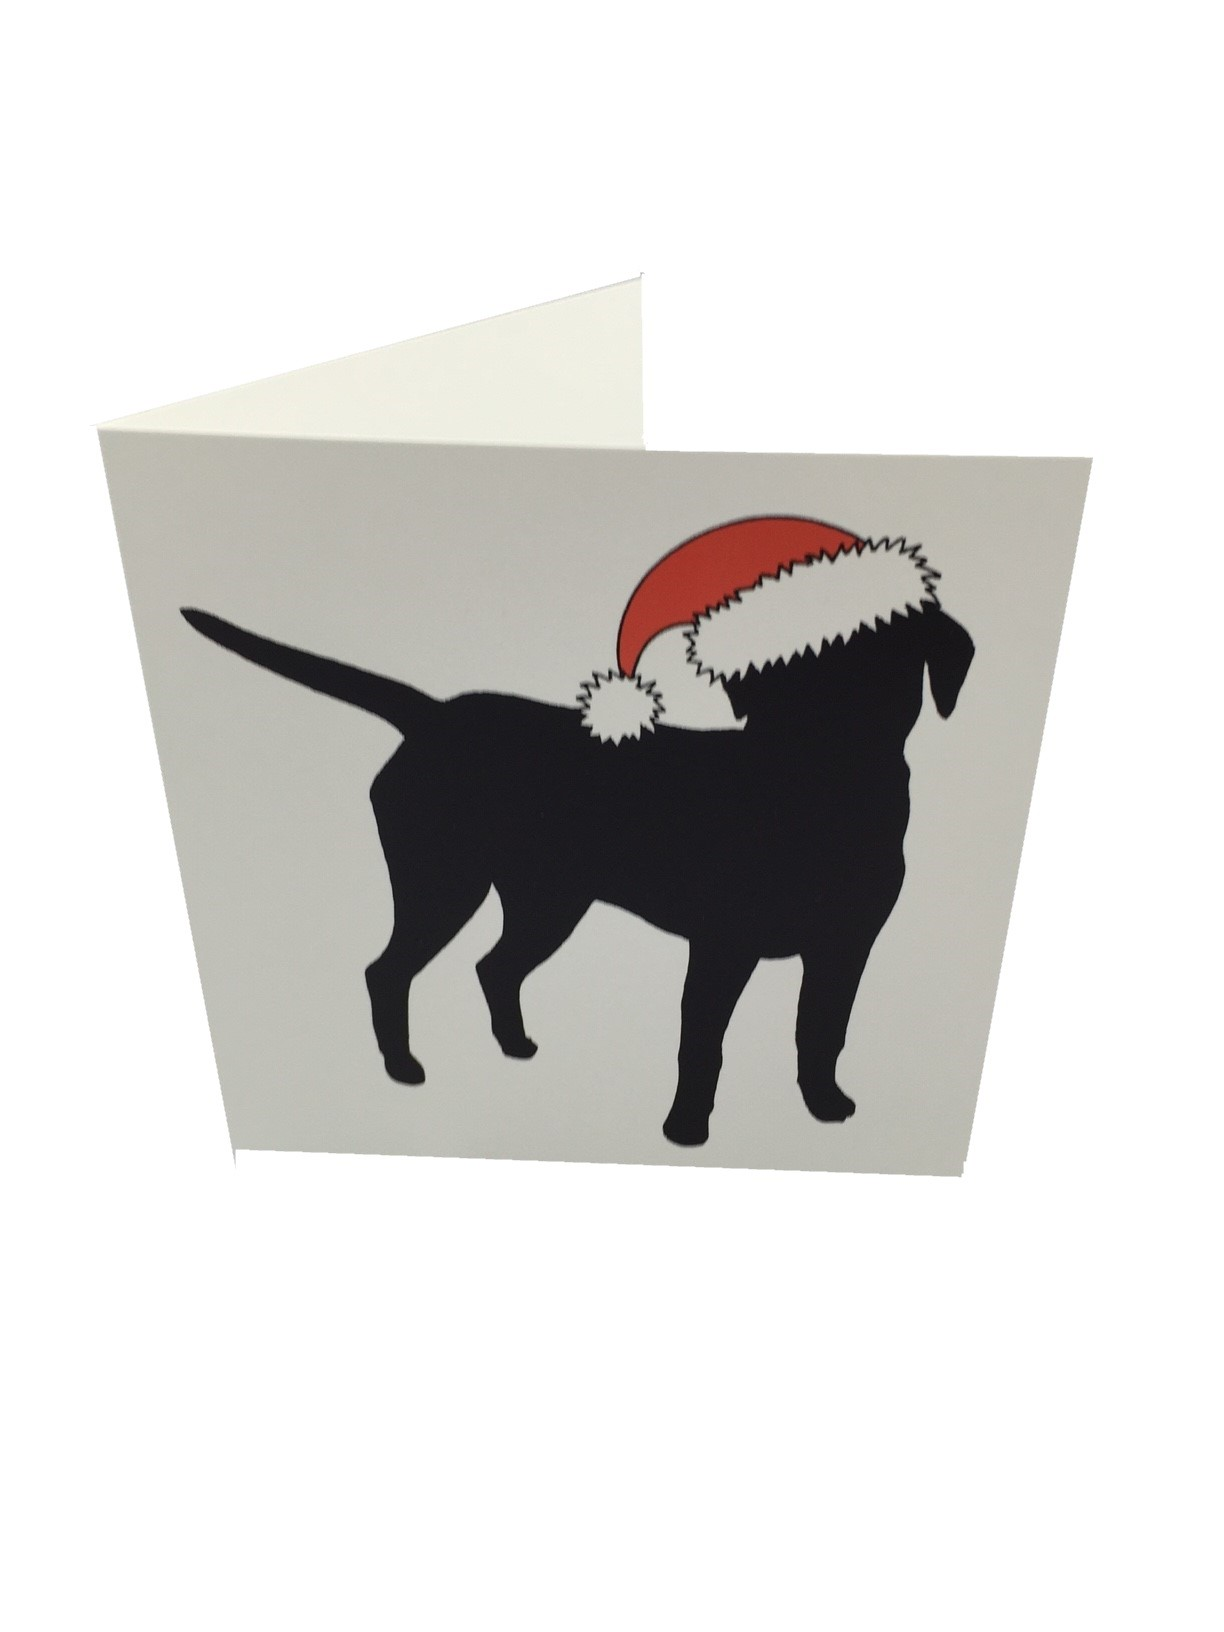 10*Blank Christmas Cards - 2 labrador designs - Black Labrador